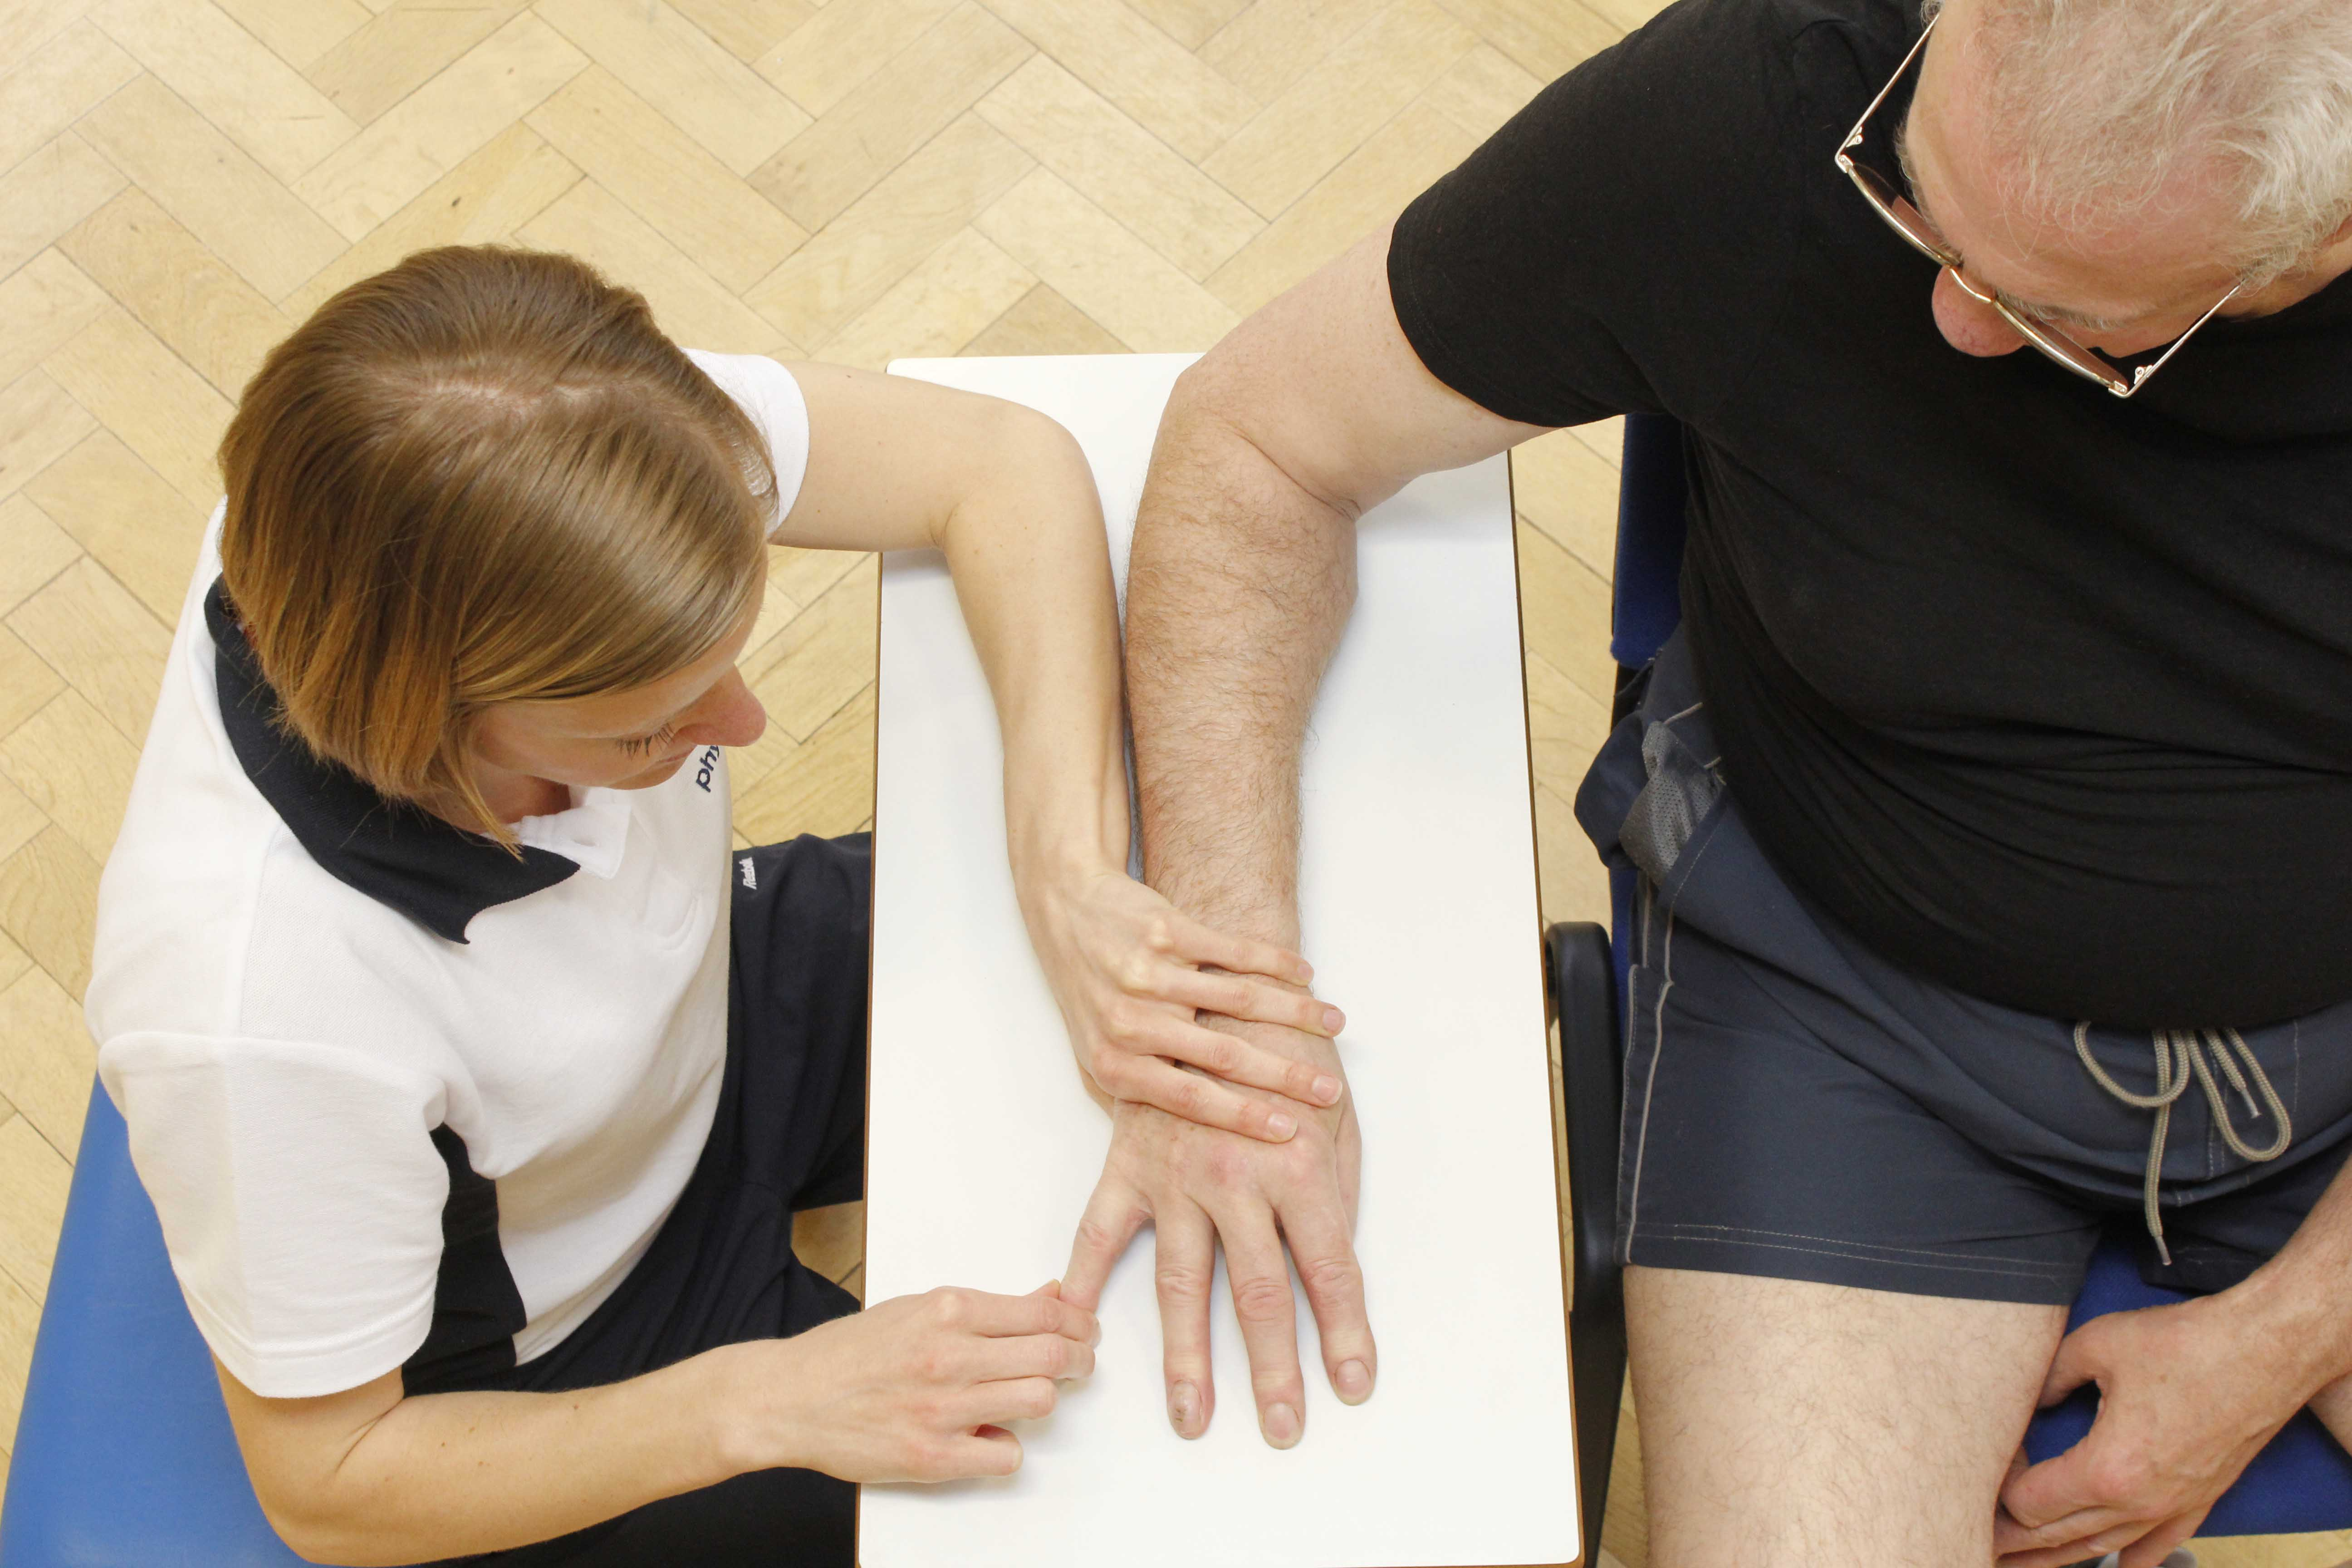 Hand and finger mobilisation exercises performed by MSK physiotherapist